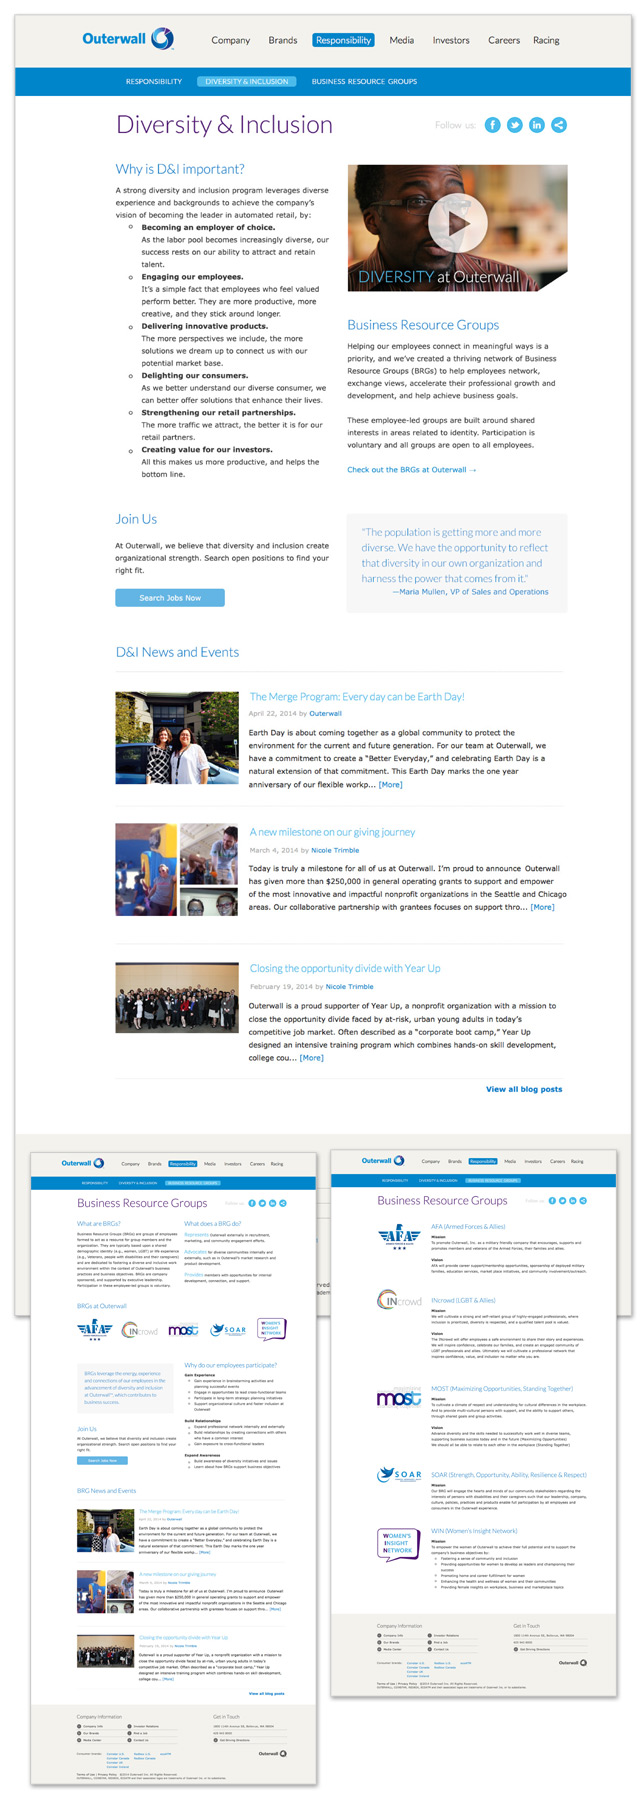 Diversity & Inclusion  / Outerwall is a charitable company with strong values, so HR wanted to introduce new webpages to highlight their Diversity & Inclusion department.